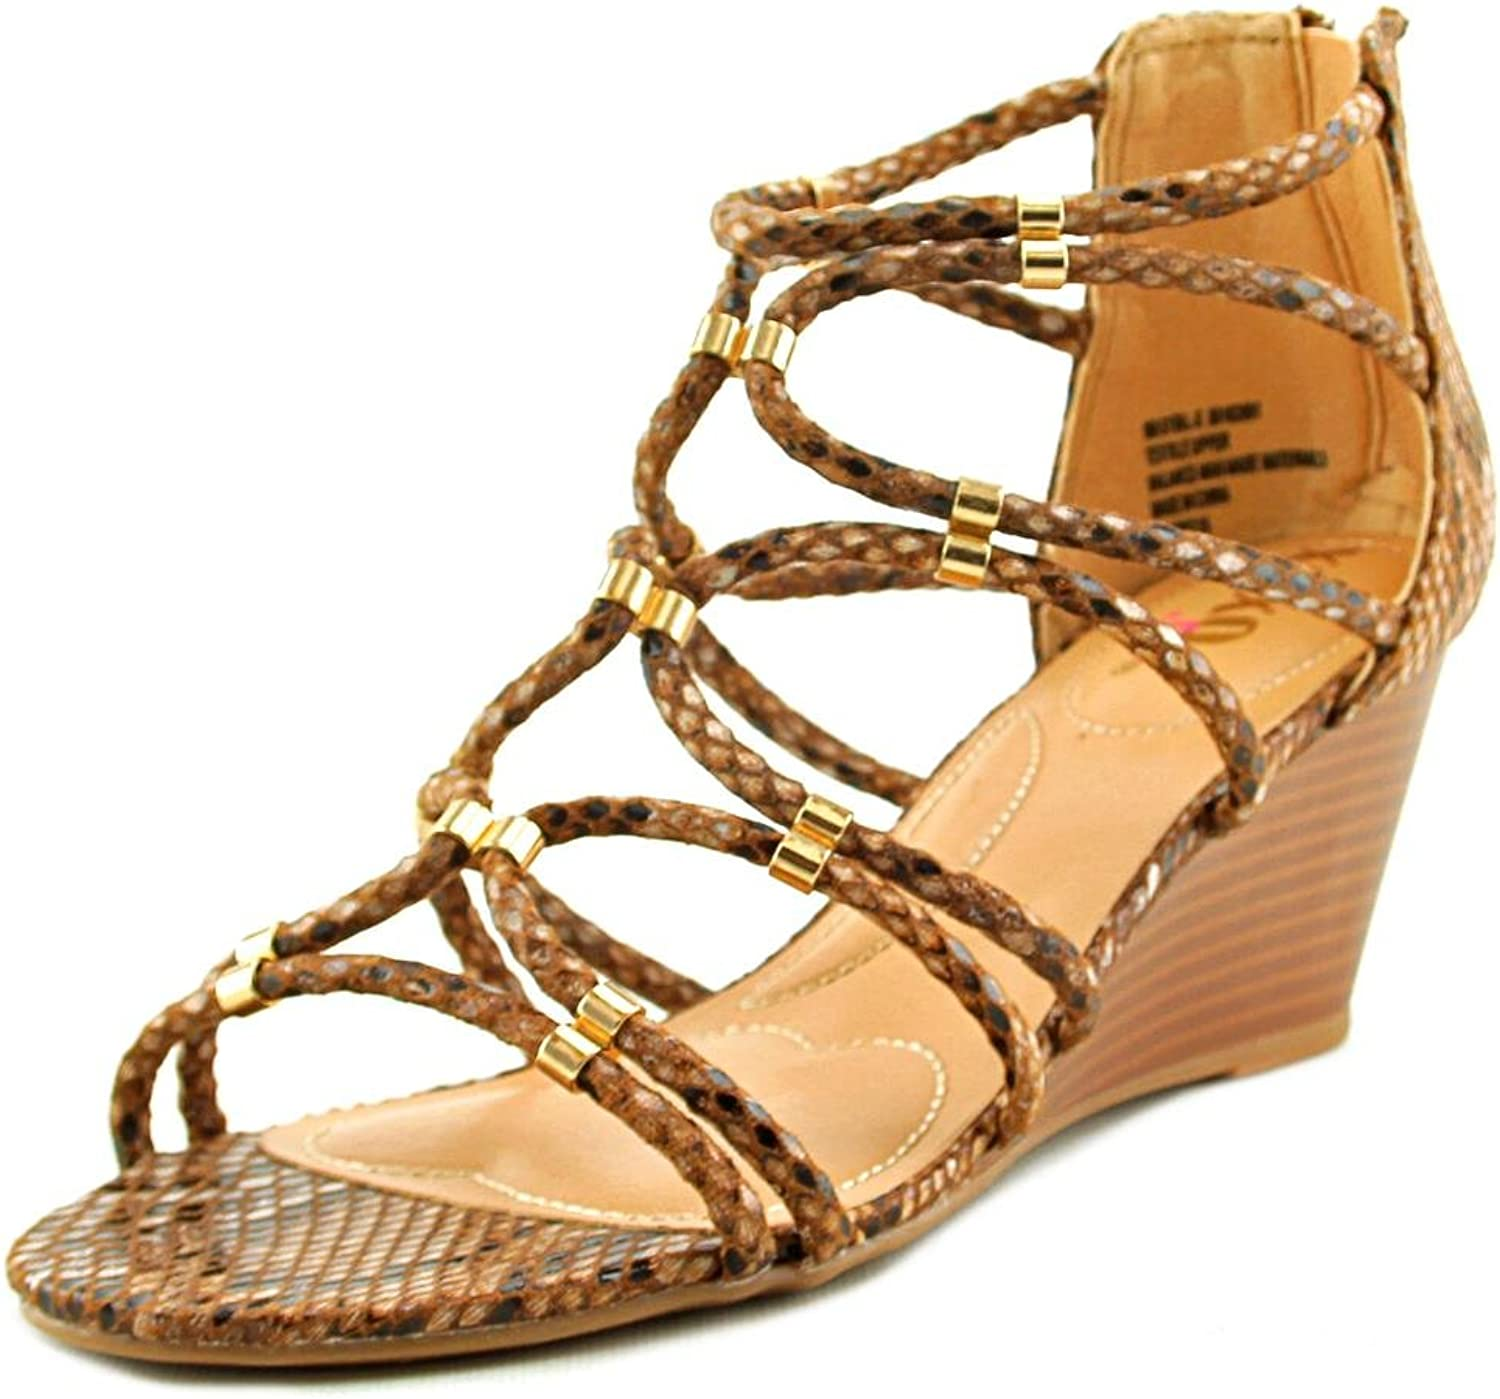 XOXO Womens Sybil Open Toe Ankle Strap Wedge Pumps, Tan Snake, Size 6.5